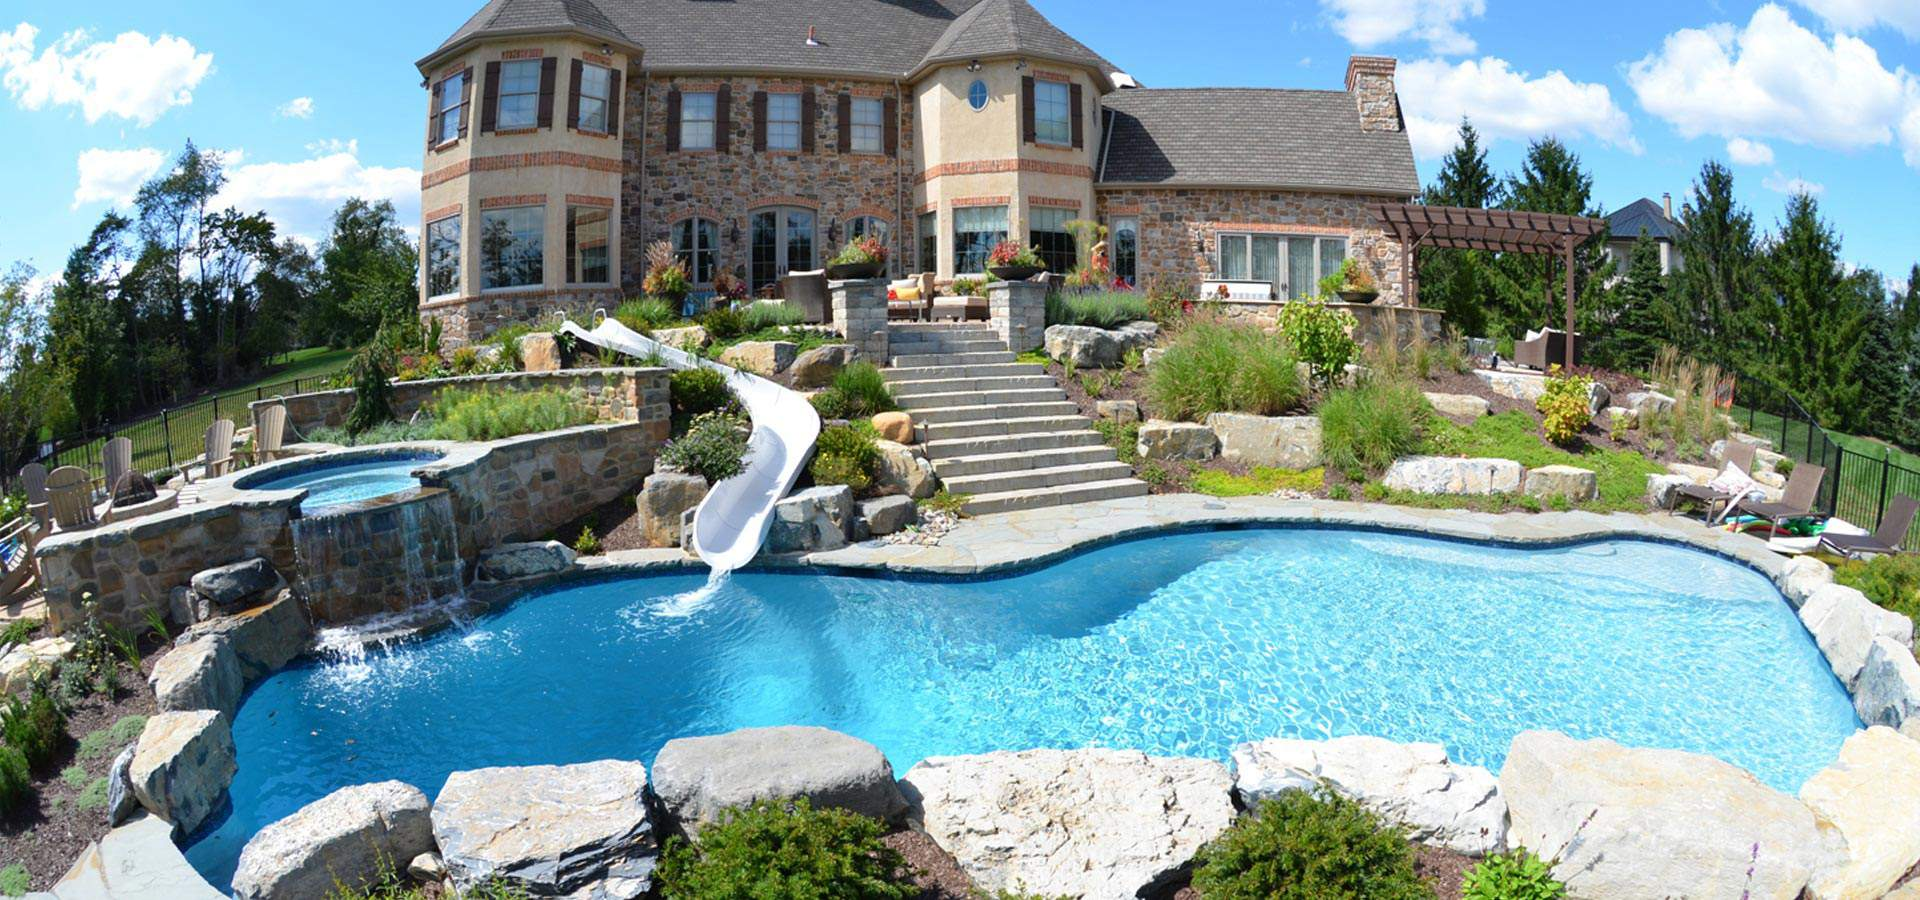 Inground Pools 1 pool builder in lehigh valley pa | best inground pools